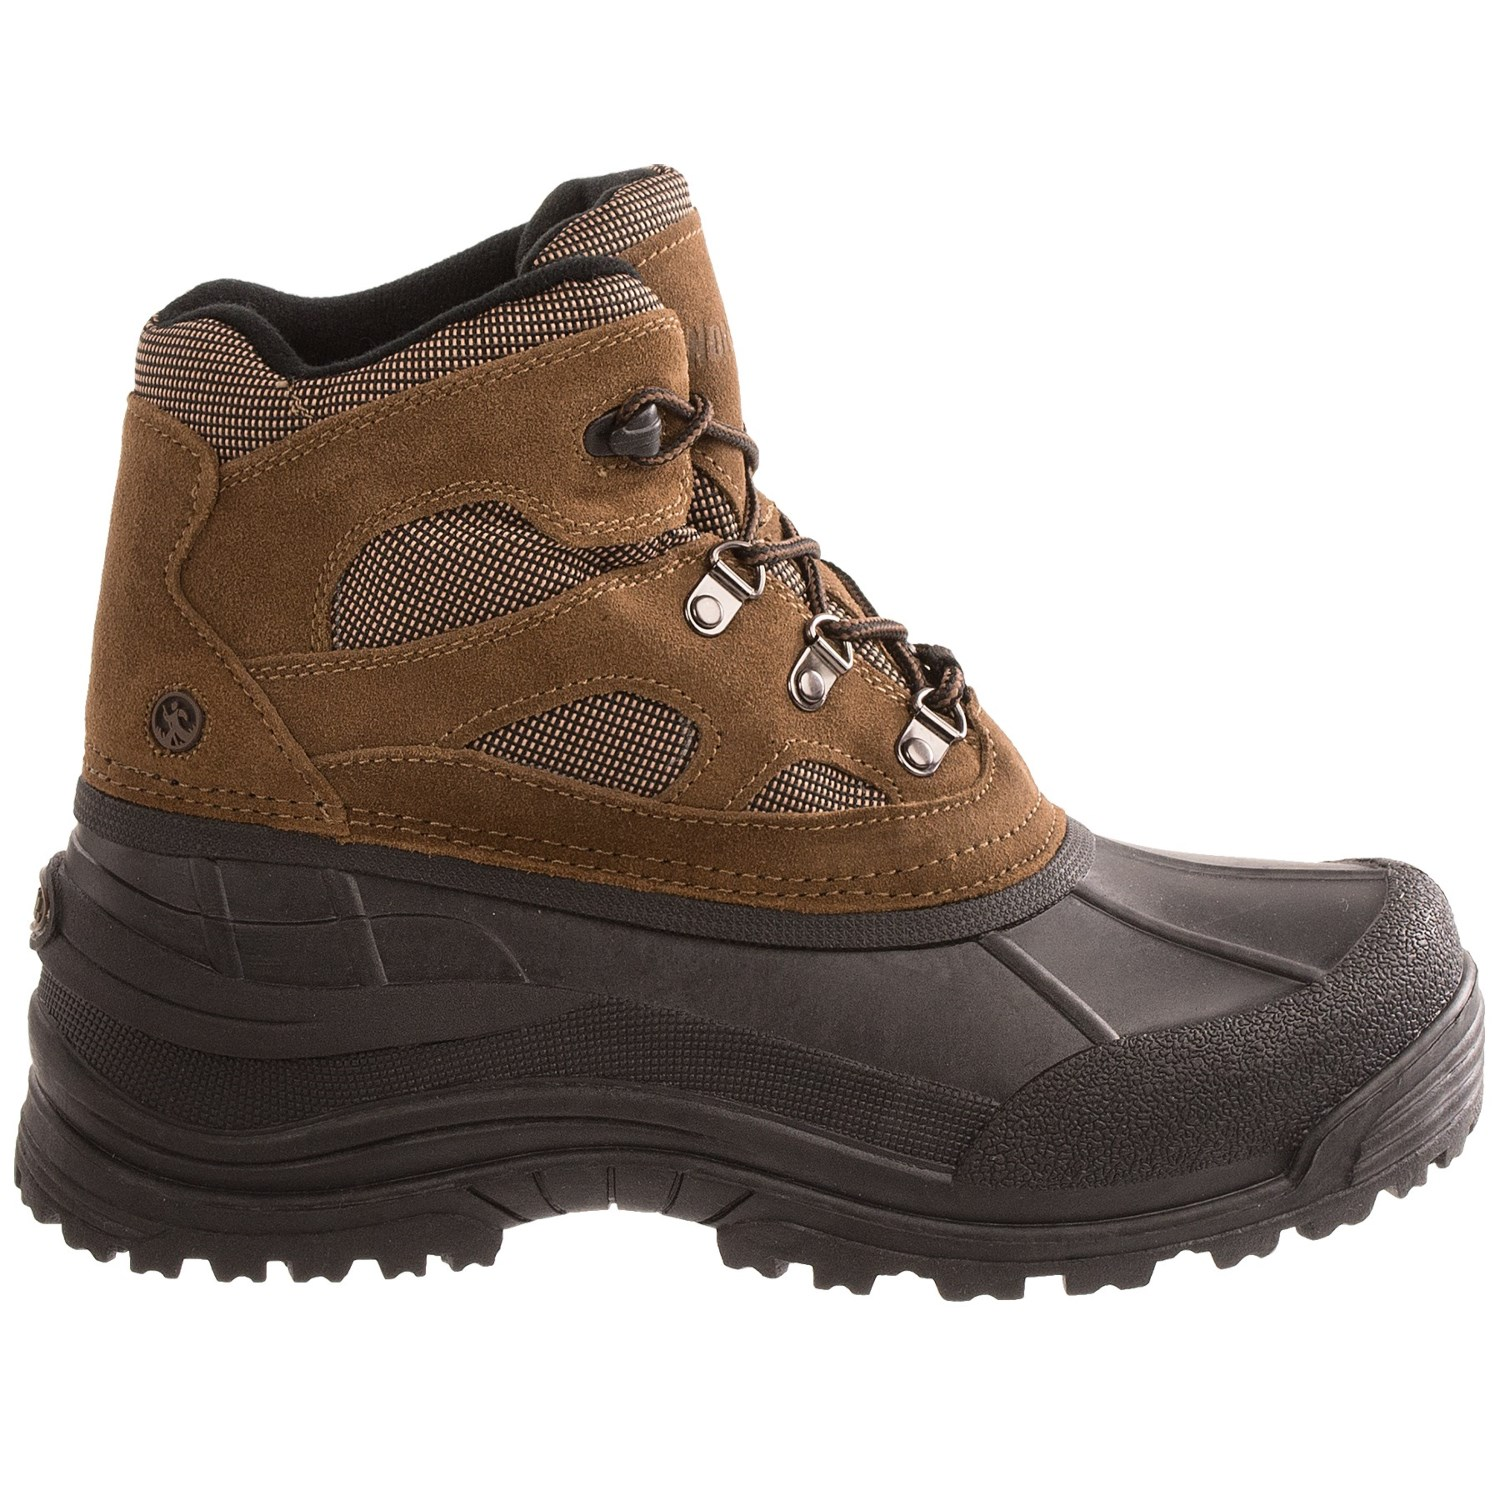 northside bighorn snow boots for save 36